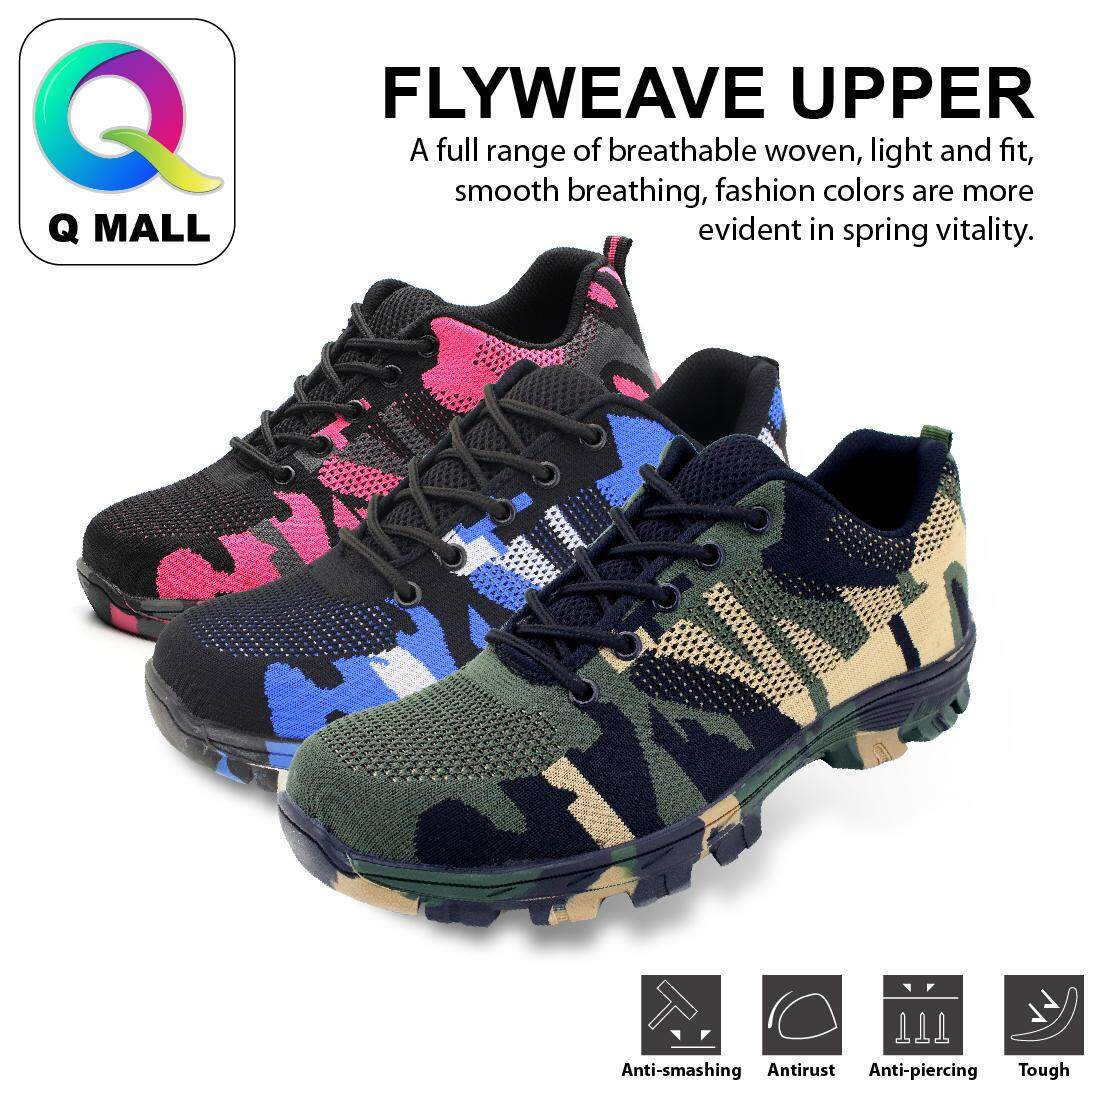 Q MALL Fashion Worker Low-Cut  Steel Toe Cap Work Safety Shoes (Flyweave Fabric) 526 - Army Green / Blue / Pink